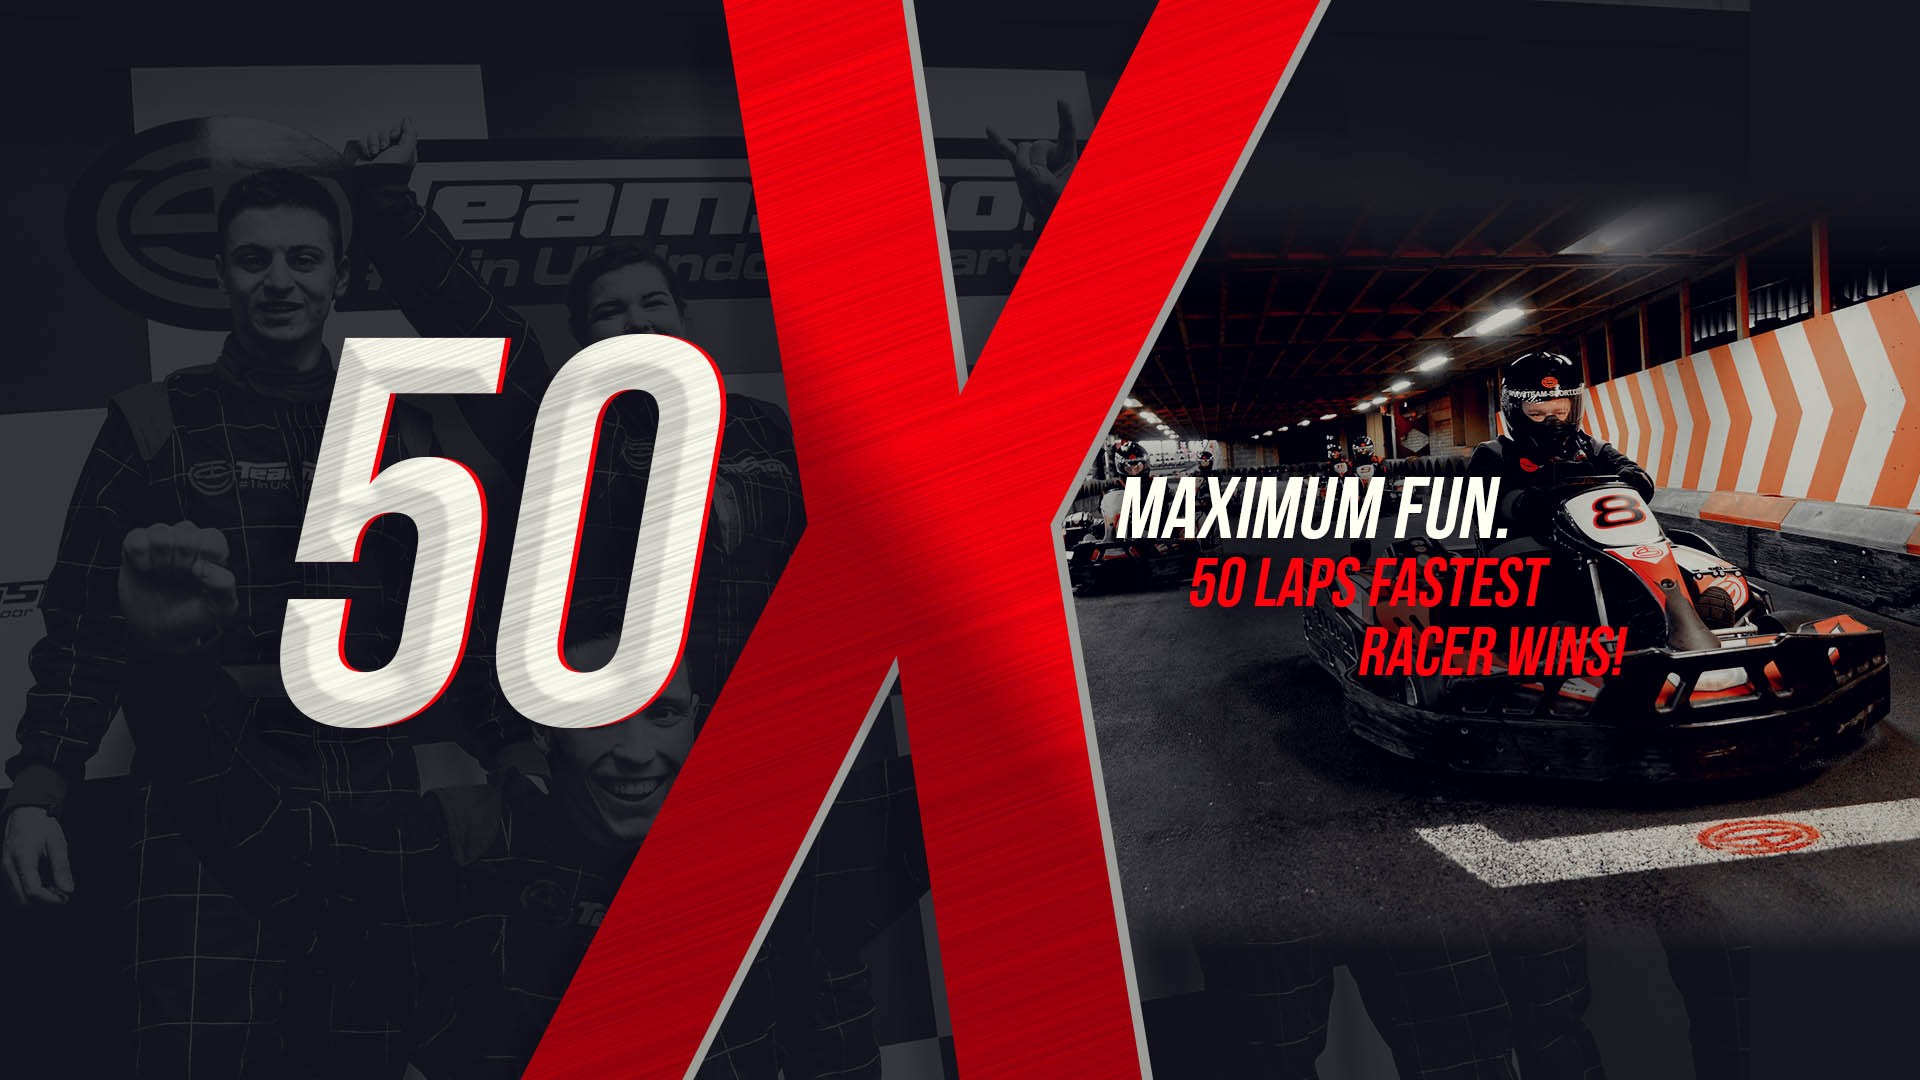 UNBEATABLE GO KARTING OFFERS - 50 Laps just £40pp